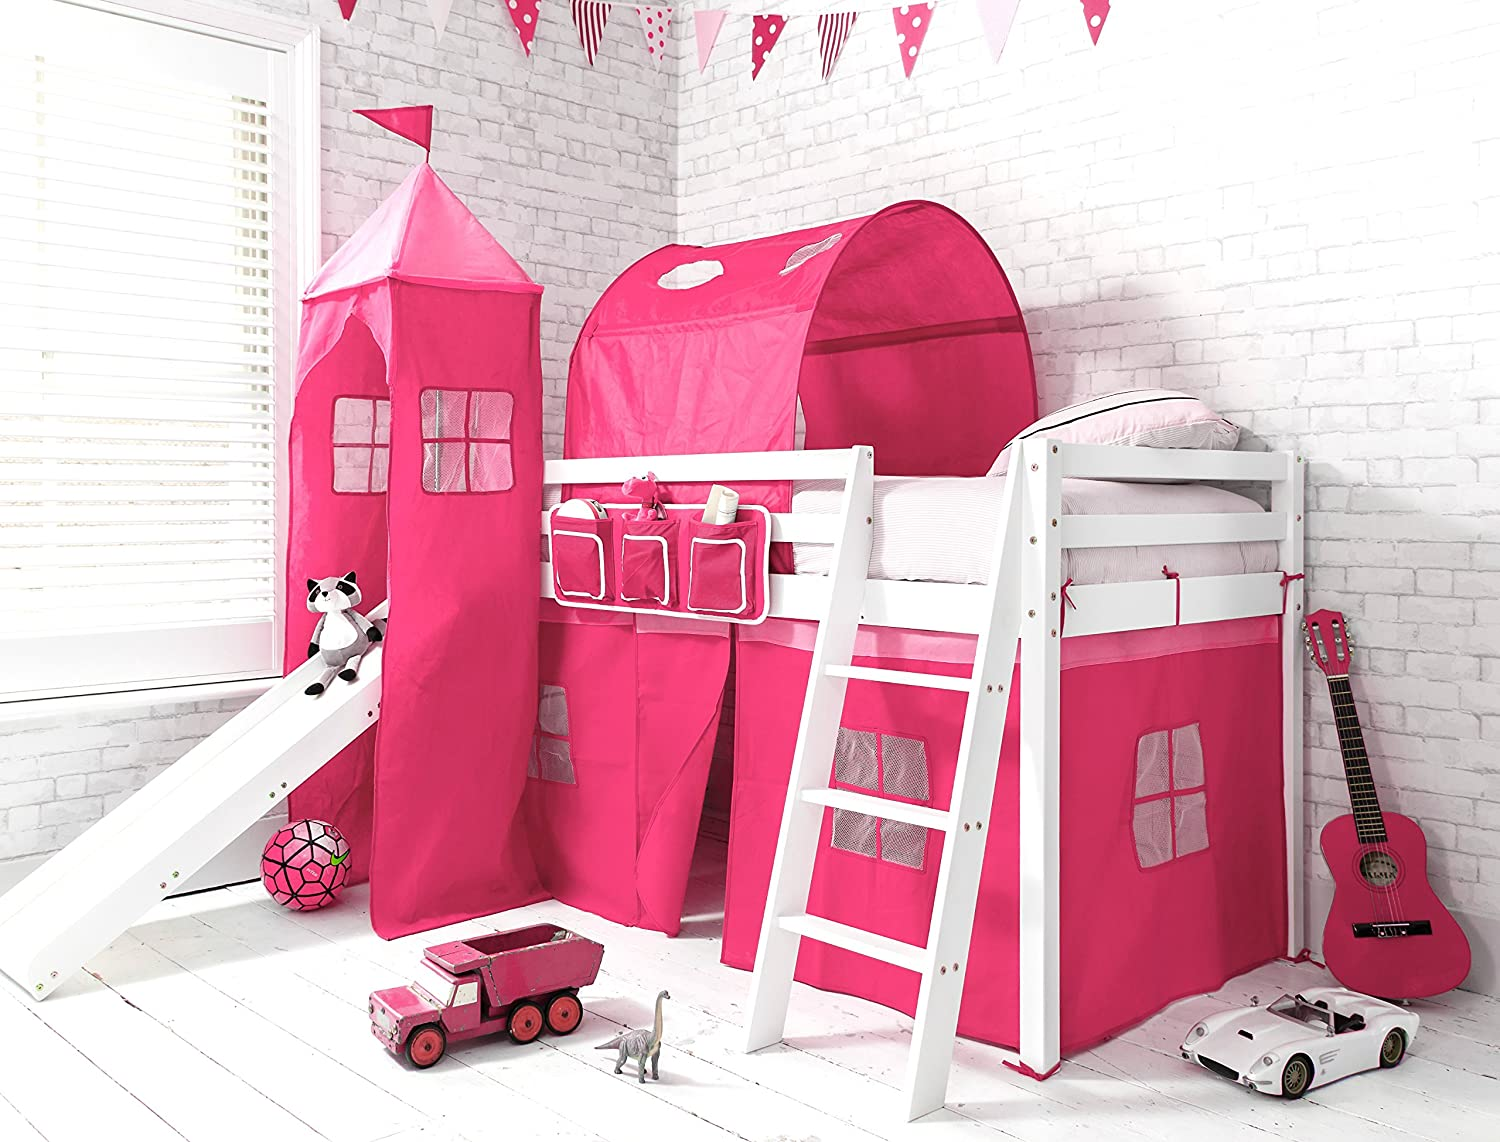 Cabin Bed Mid Sleeper in WHITE Pink Princess with Tower Tunnel u0026 Tent 6970WG-PINK Amazon.co.uk Kitchen u0026 Home  sc 1 st  Amazon UK & Cabin Bed Mid Sleeper in WHITE Pink Princess with Tower Tunnel ...